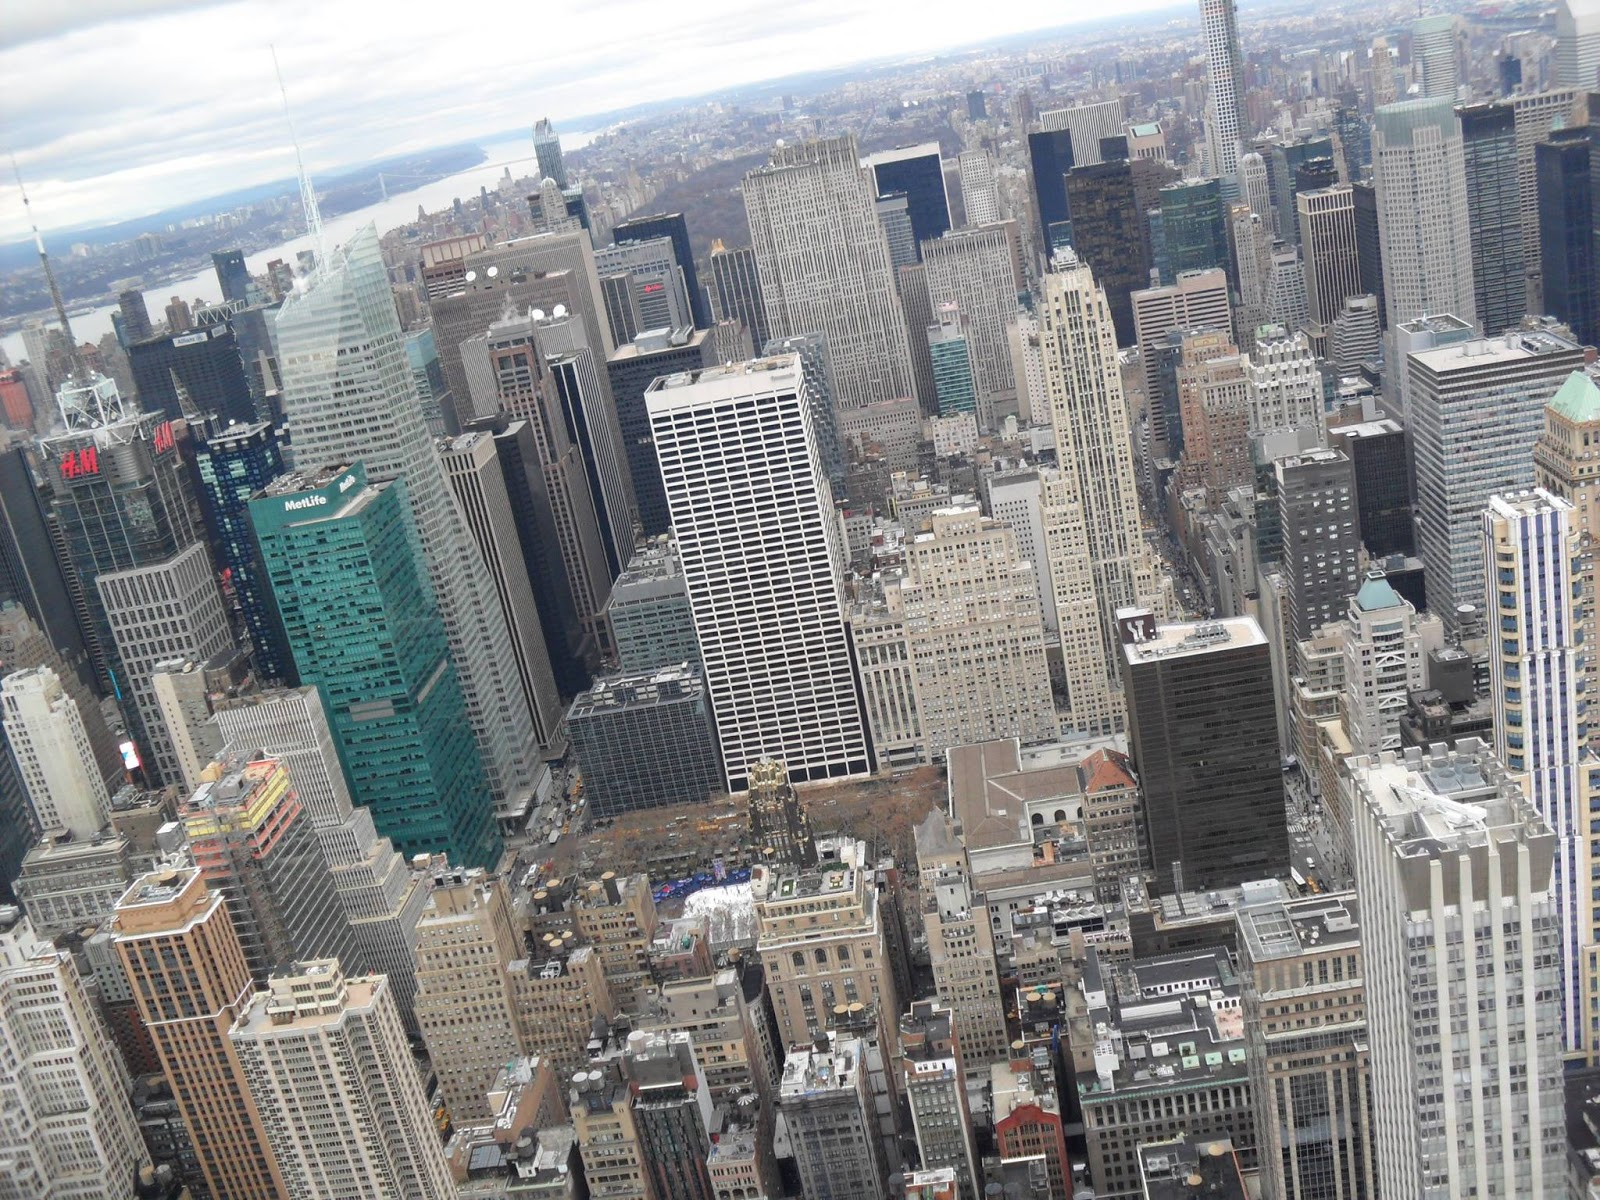 11 things you should know before going to New York